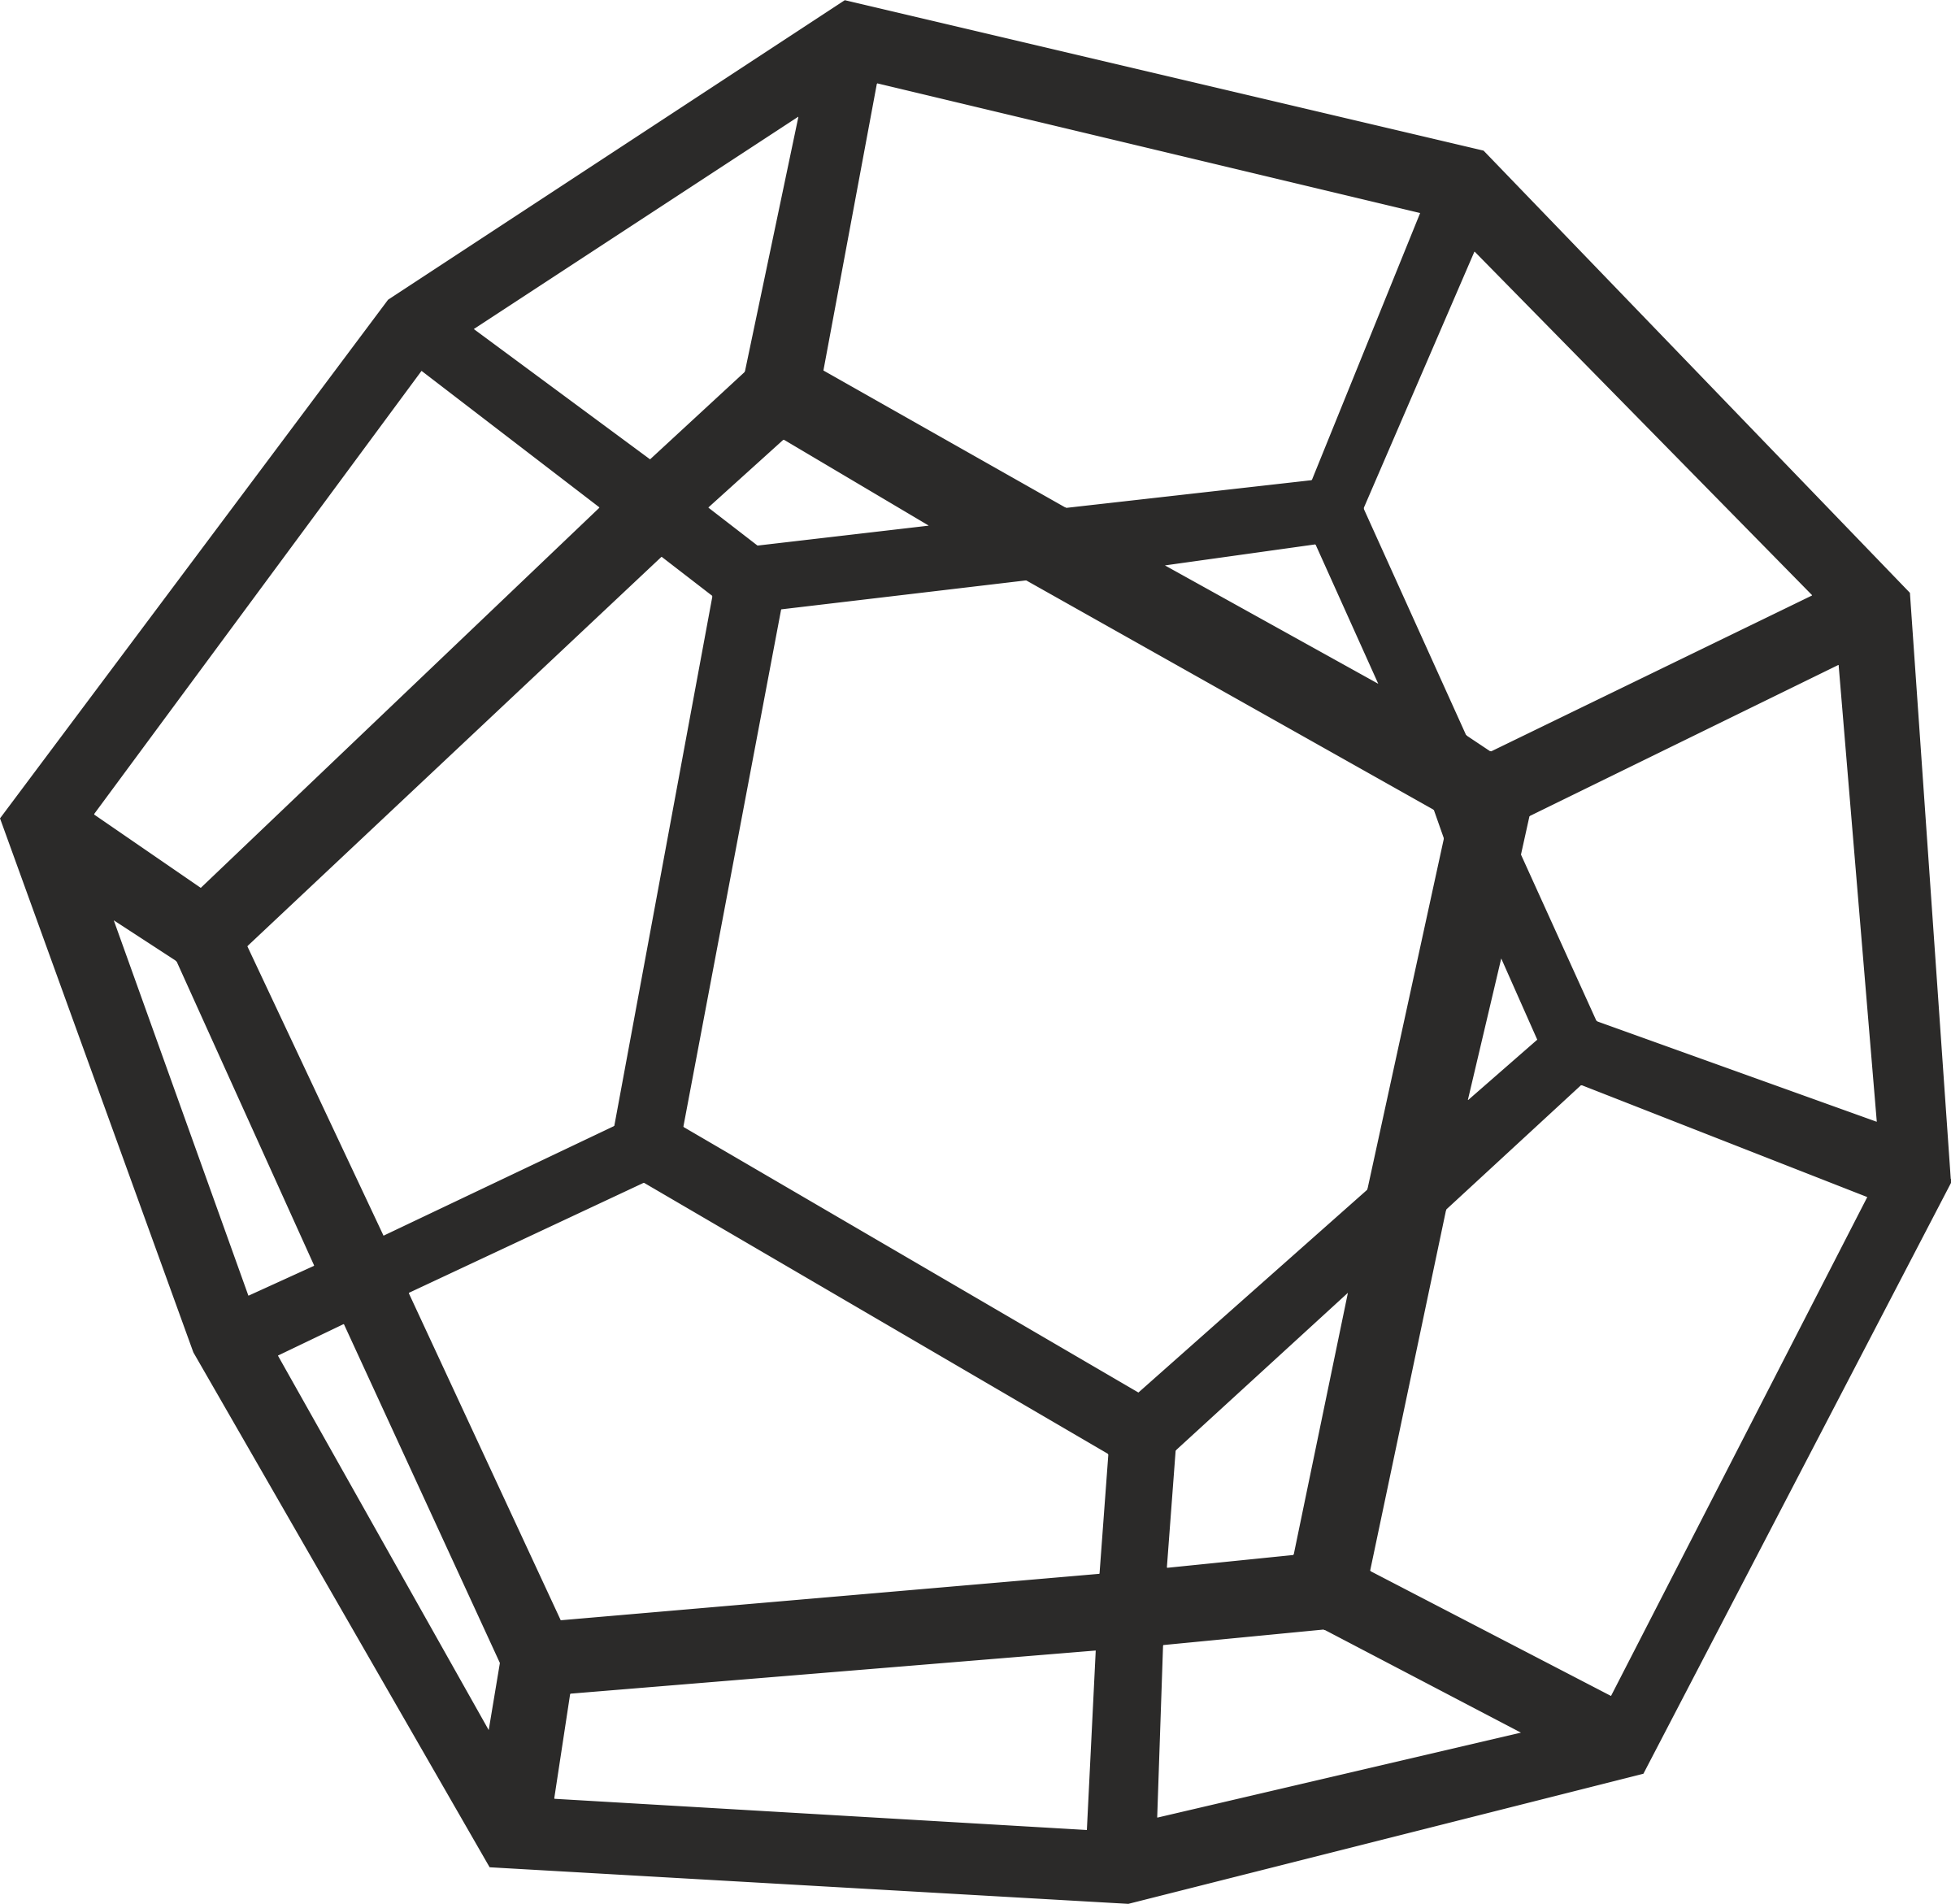 Dodecahedron by alkon